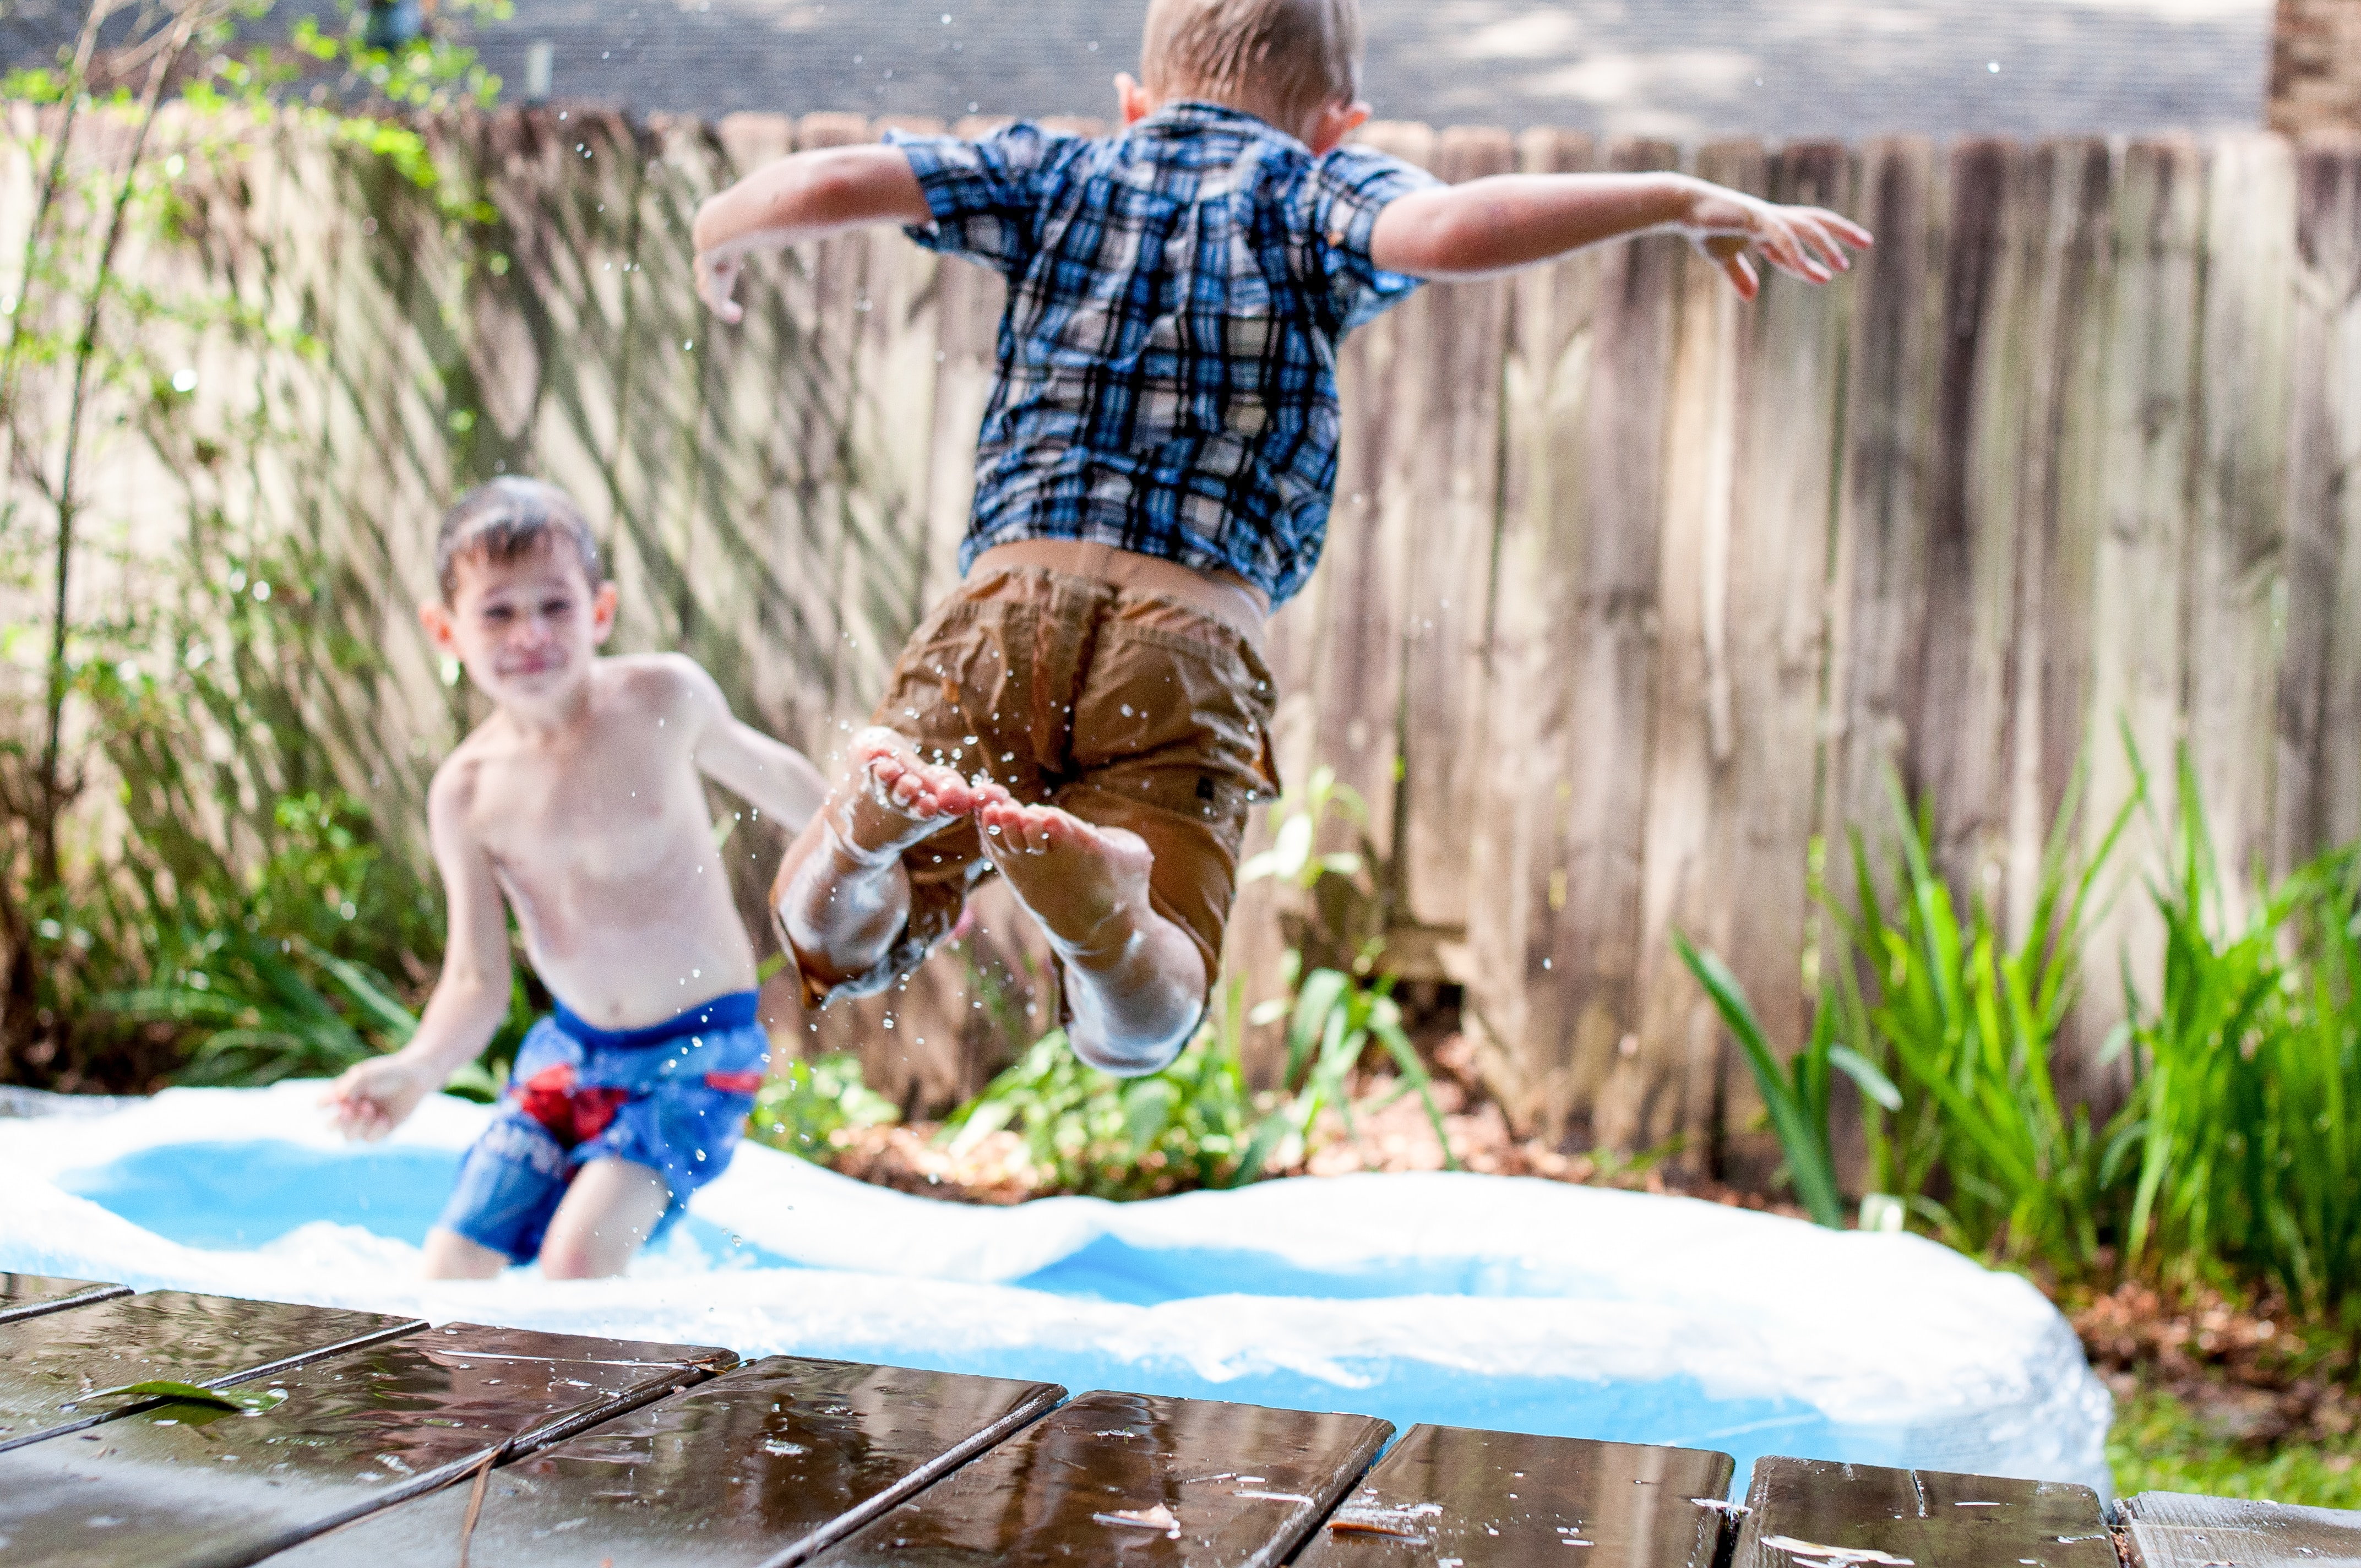 Two kids playing in a paddling pool